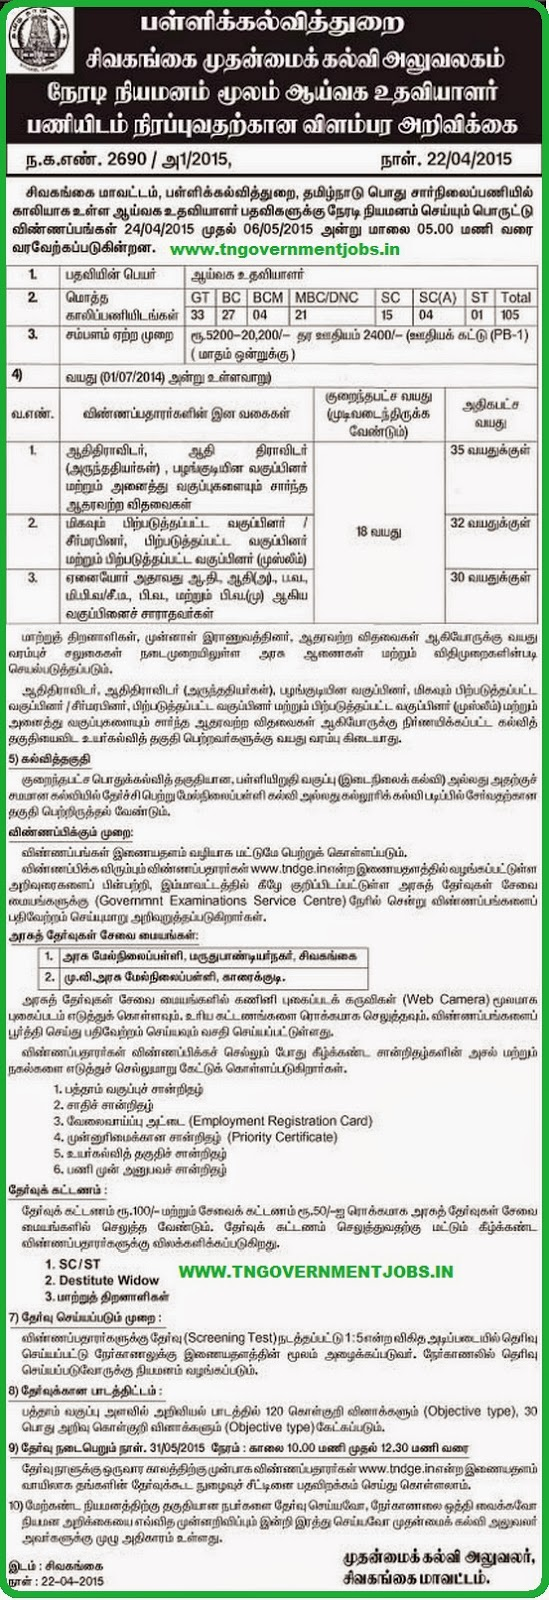 Sivagangai District CEO Lab Asst Recruitments 2015 (www.tngovernmentjobs.in)